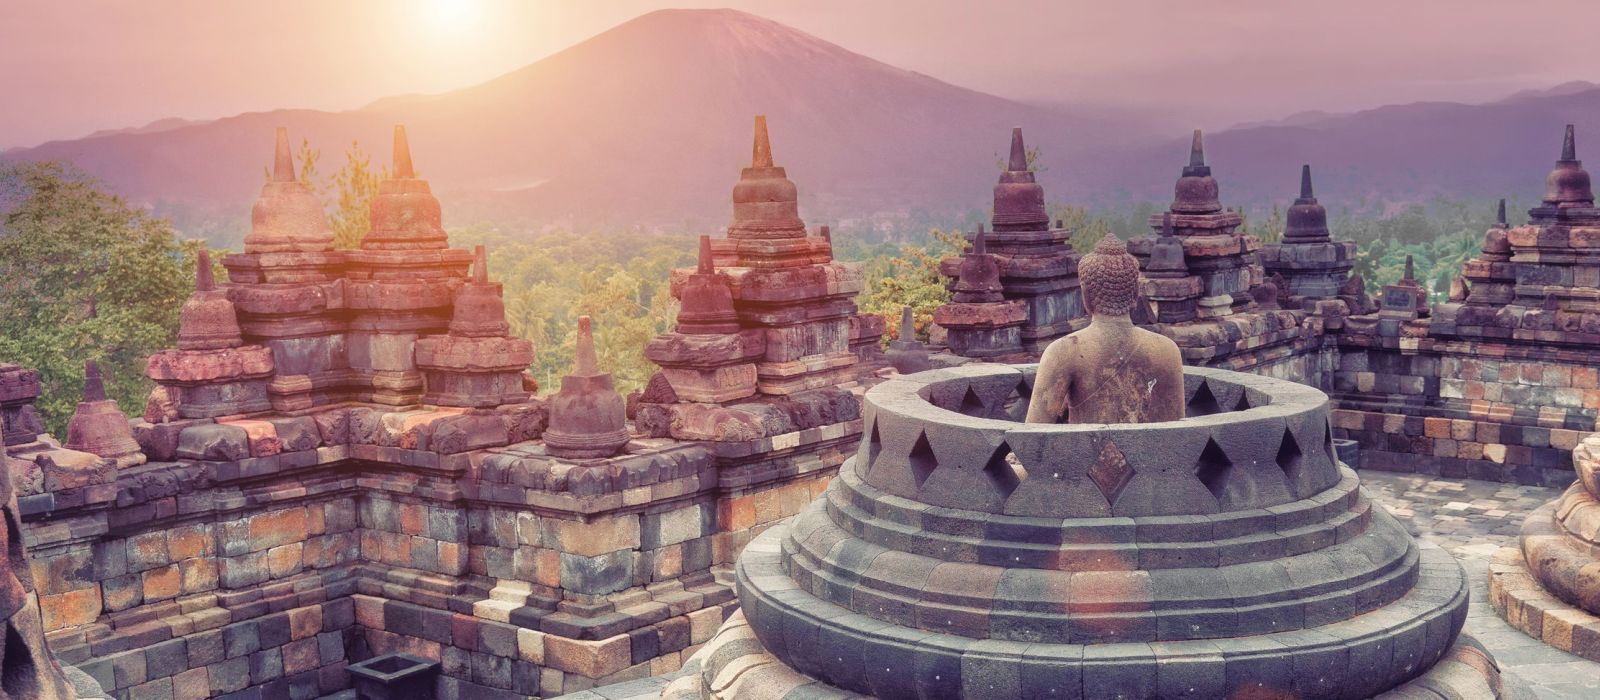 Indonesia Tours & Trips